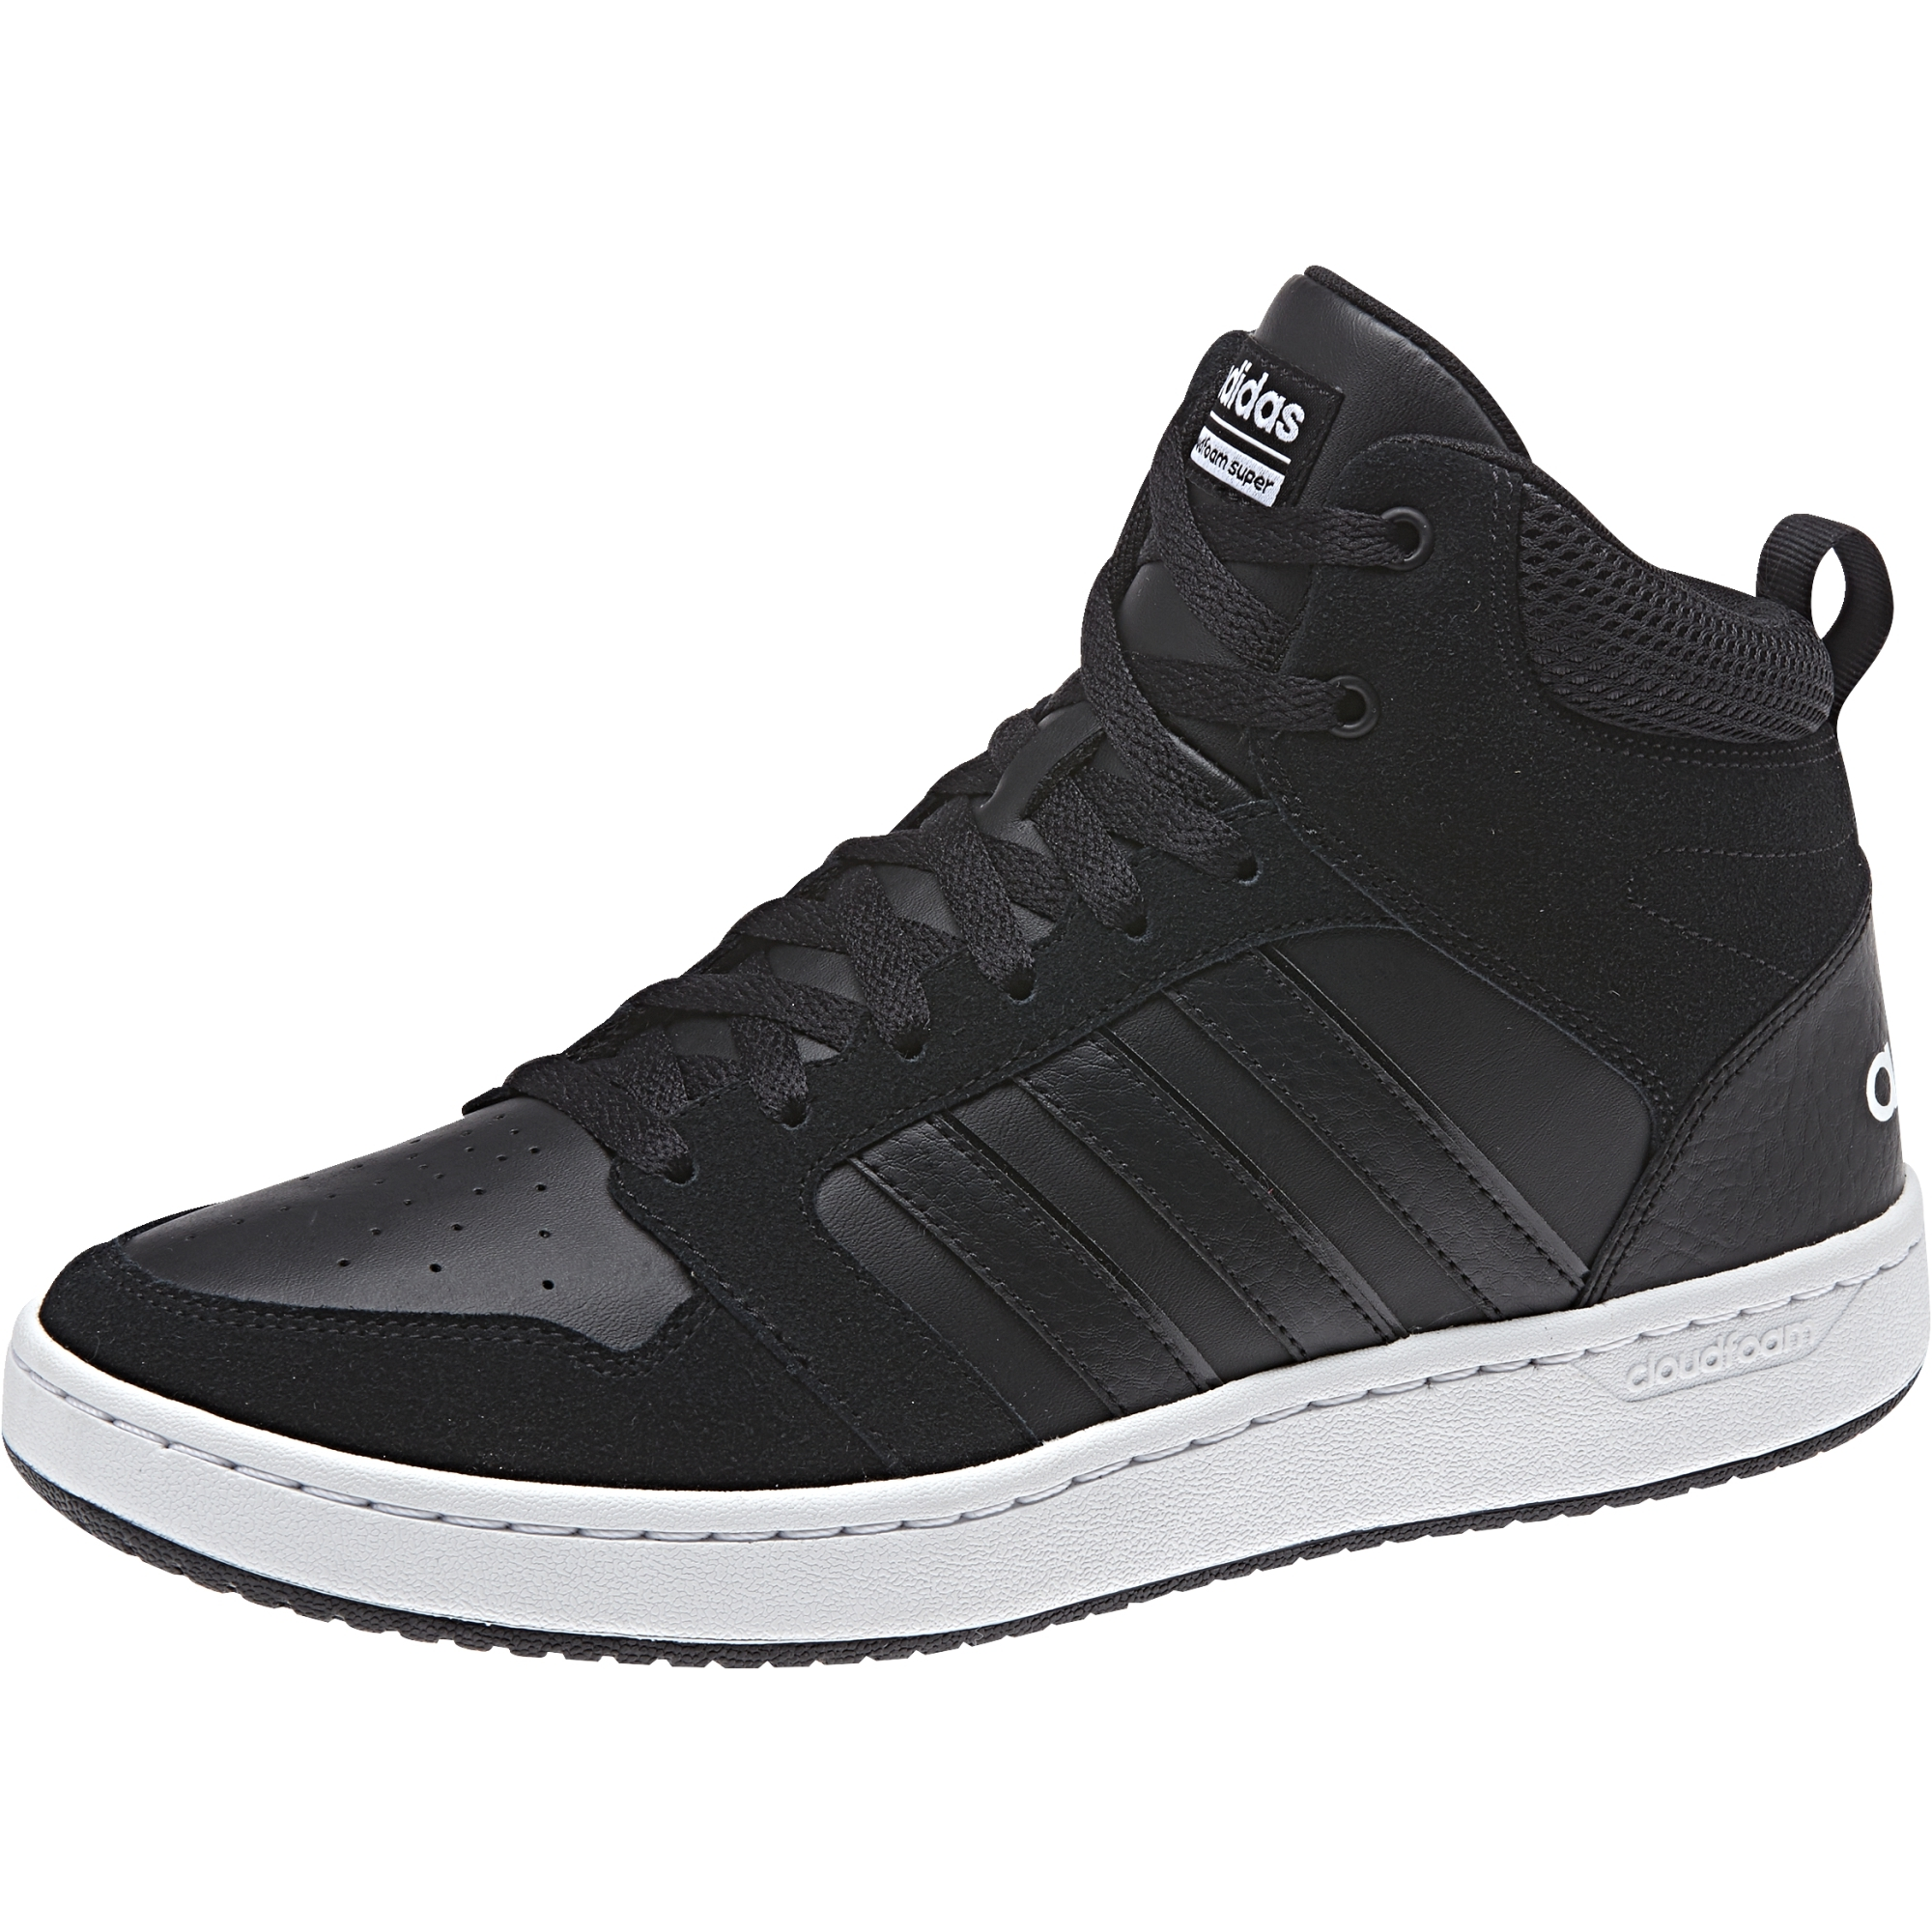 adidas homme montant